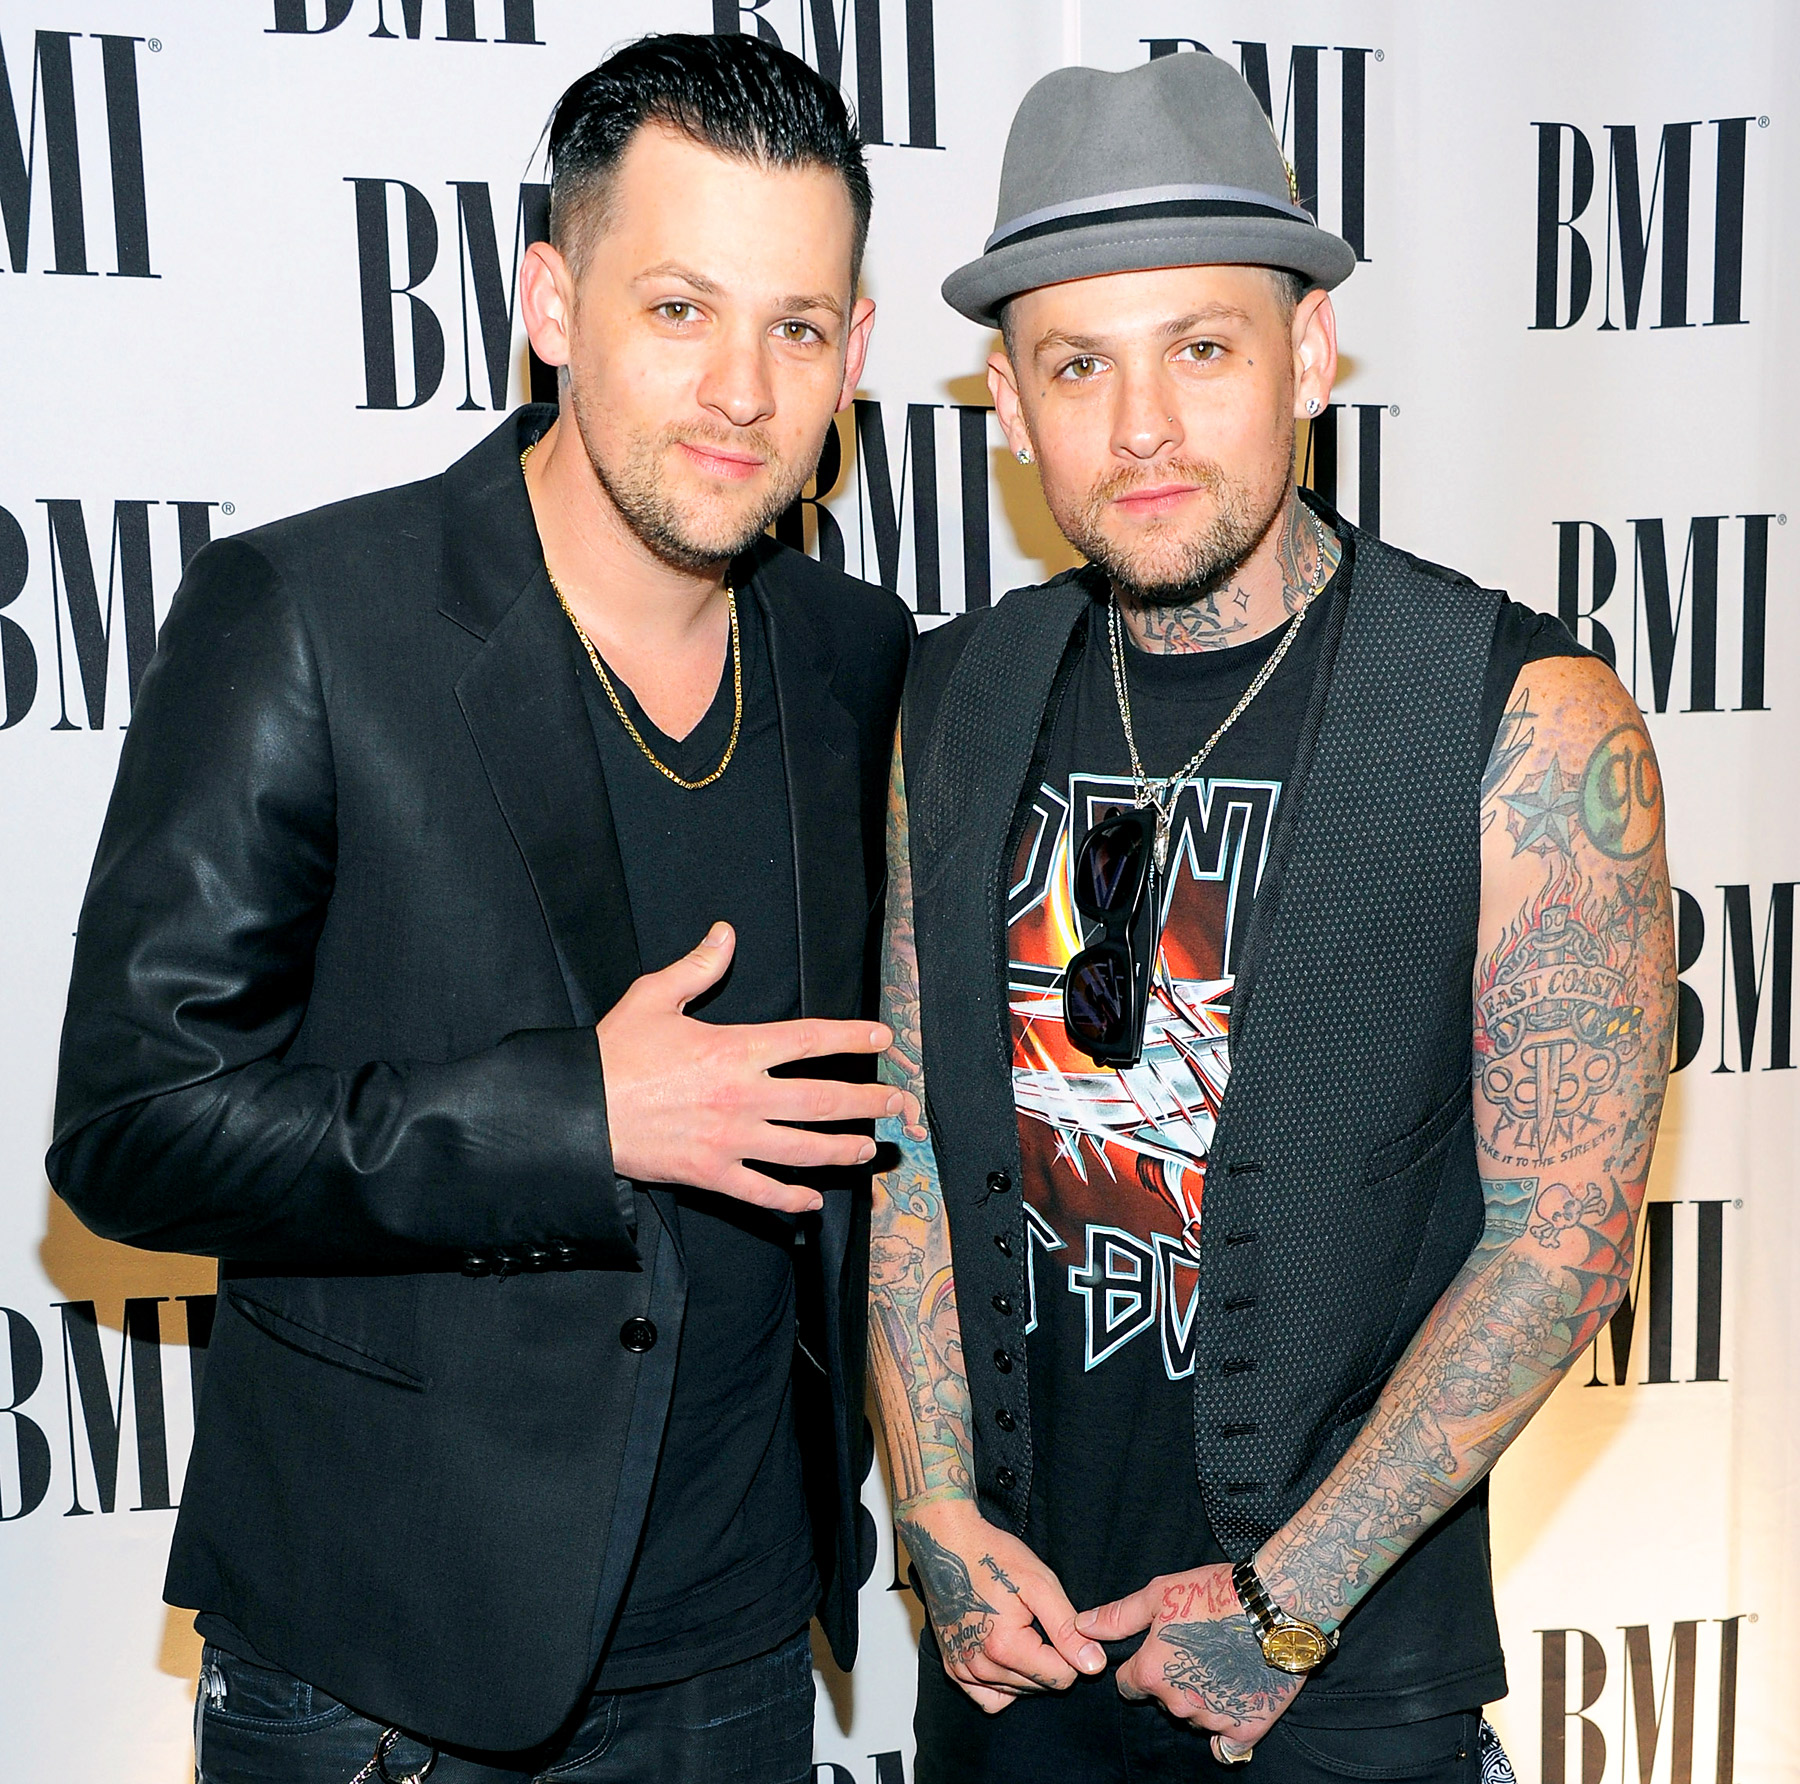 Tattooed twins! These two identical twins rose to fame through their band Good Charlotte, taking Hollywood -- and its gorgeous ladies -- by storm.